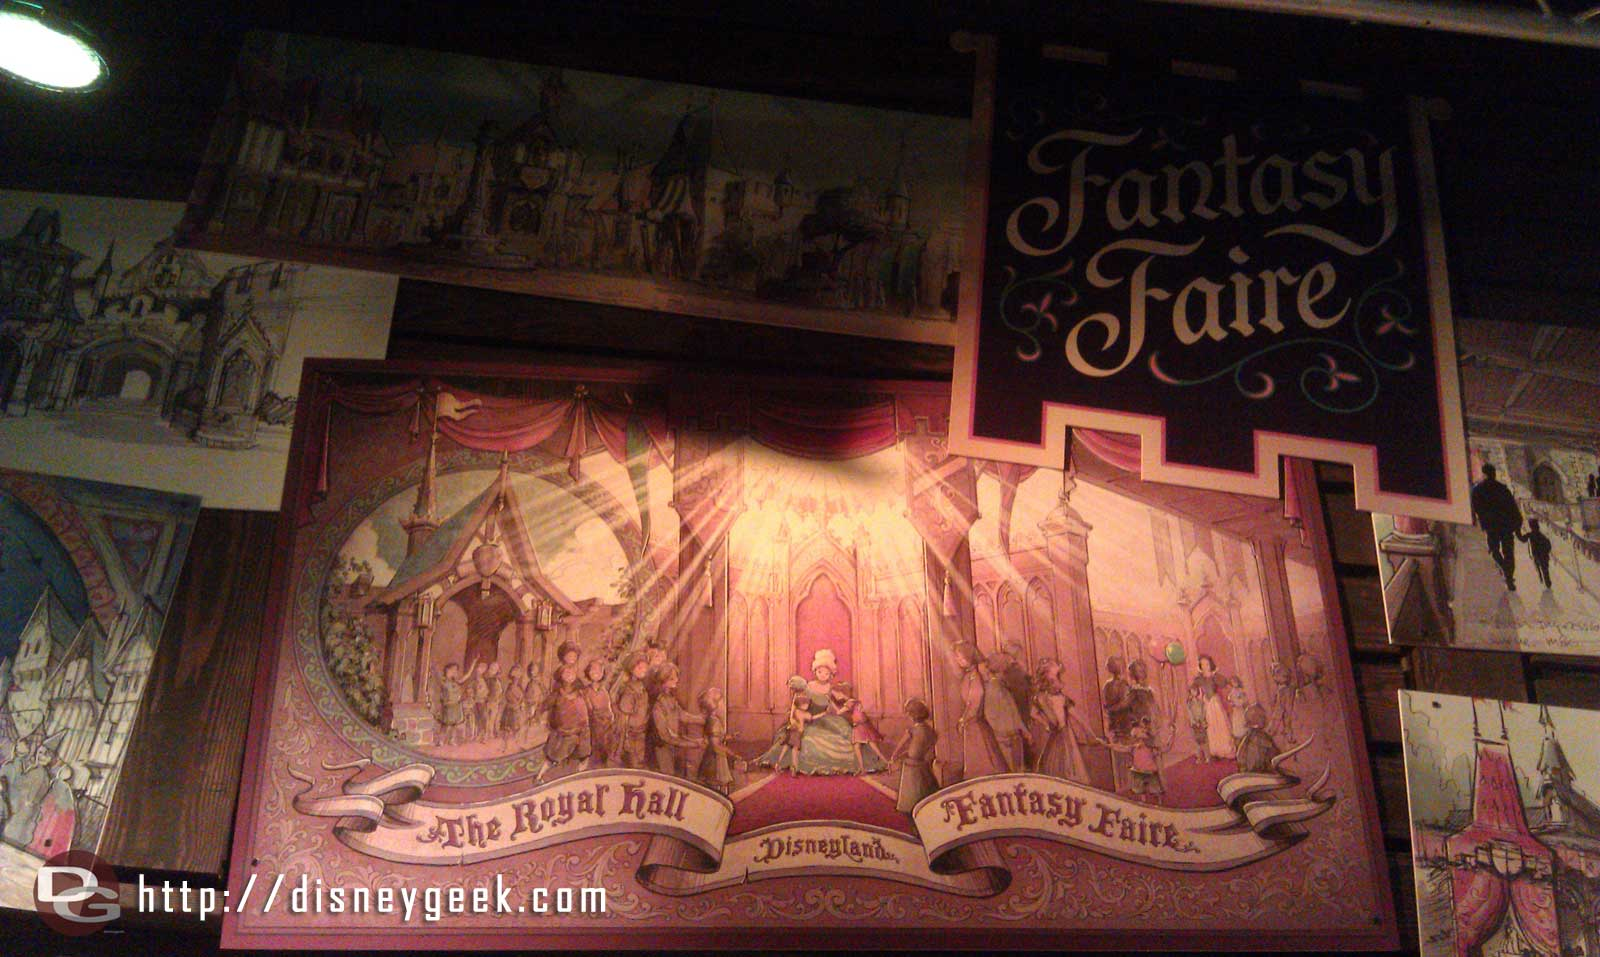 Stopped by the Blue Sky Cellar to spend more time at the Fantasy Faire Exhibit